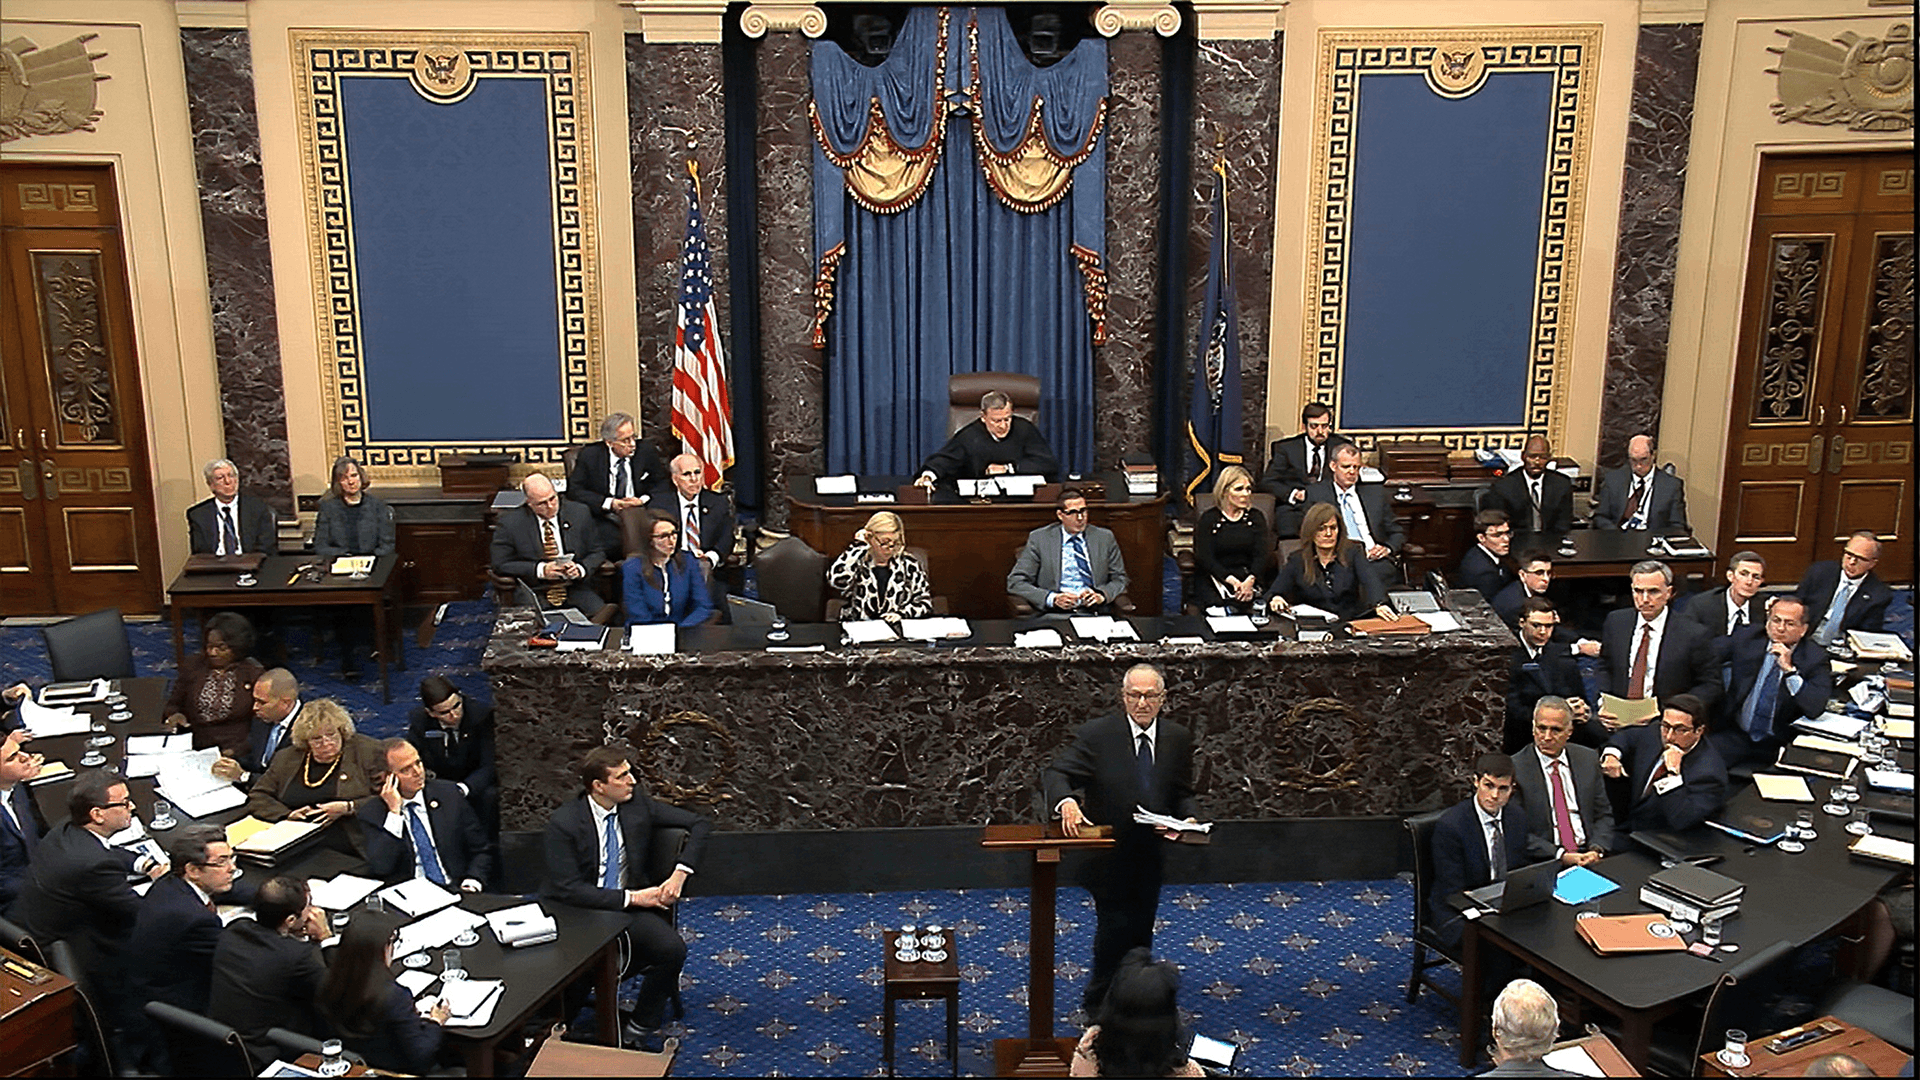 W.H. Defense attackBidens and the House's case for impeachment